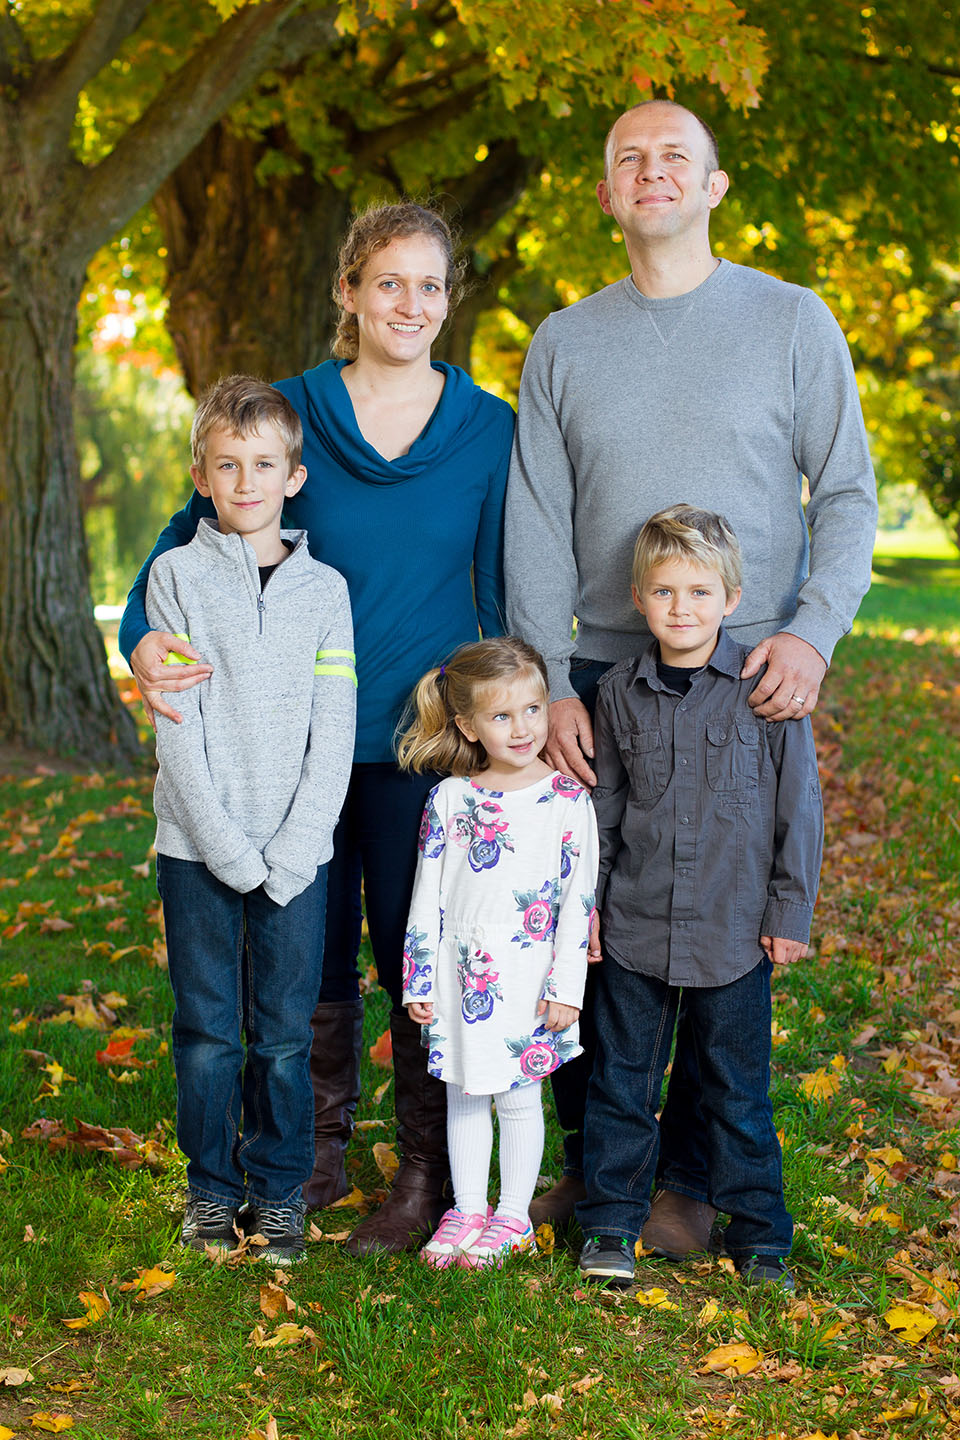 Family portraits in Hockley, taken by Frank Myrland Photography